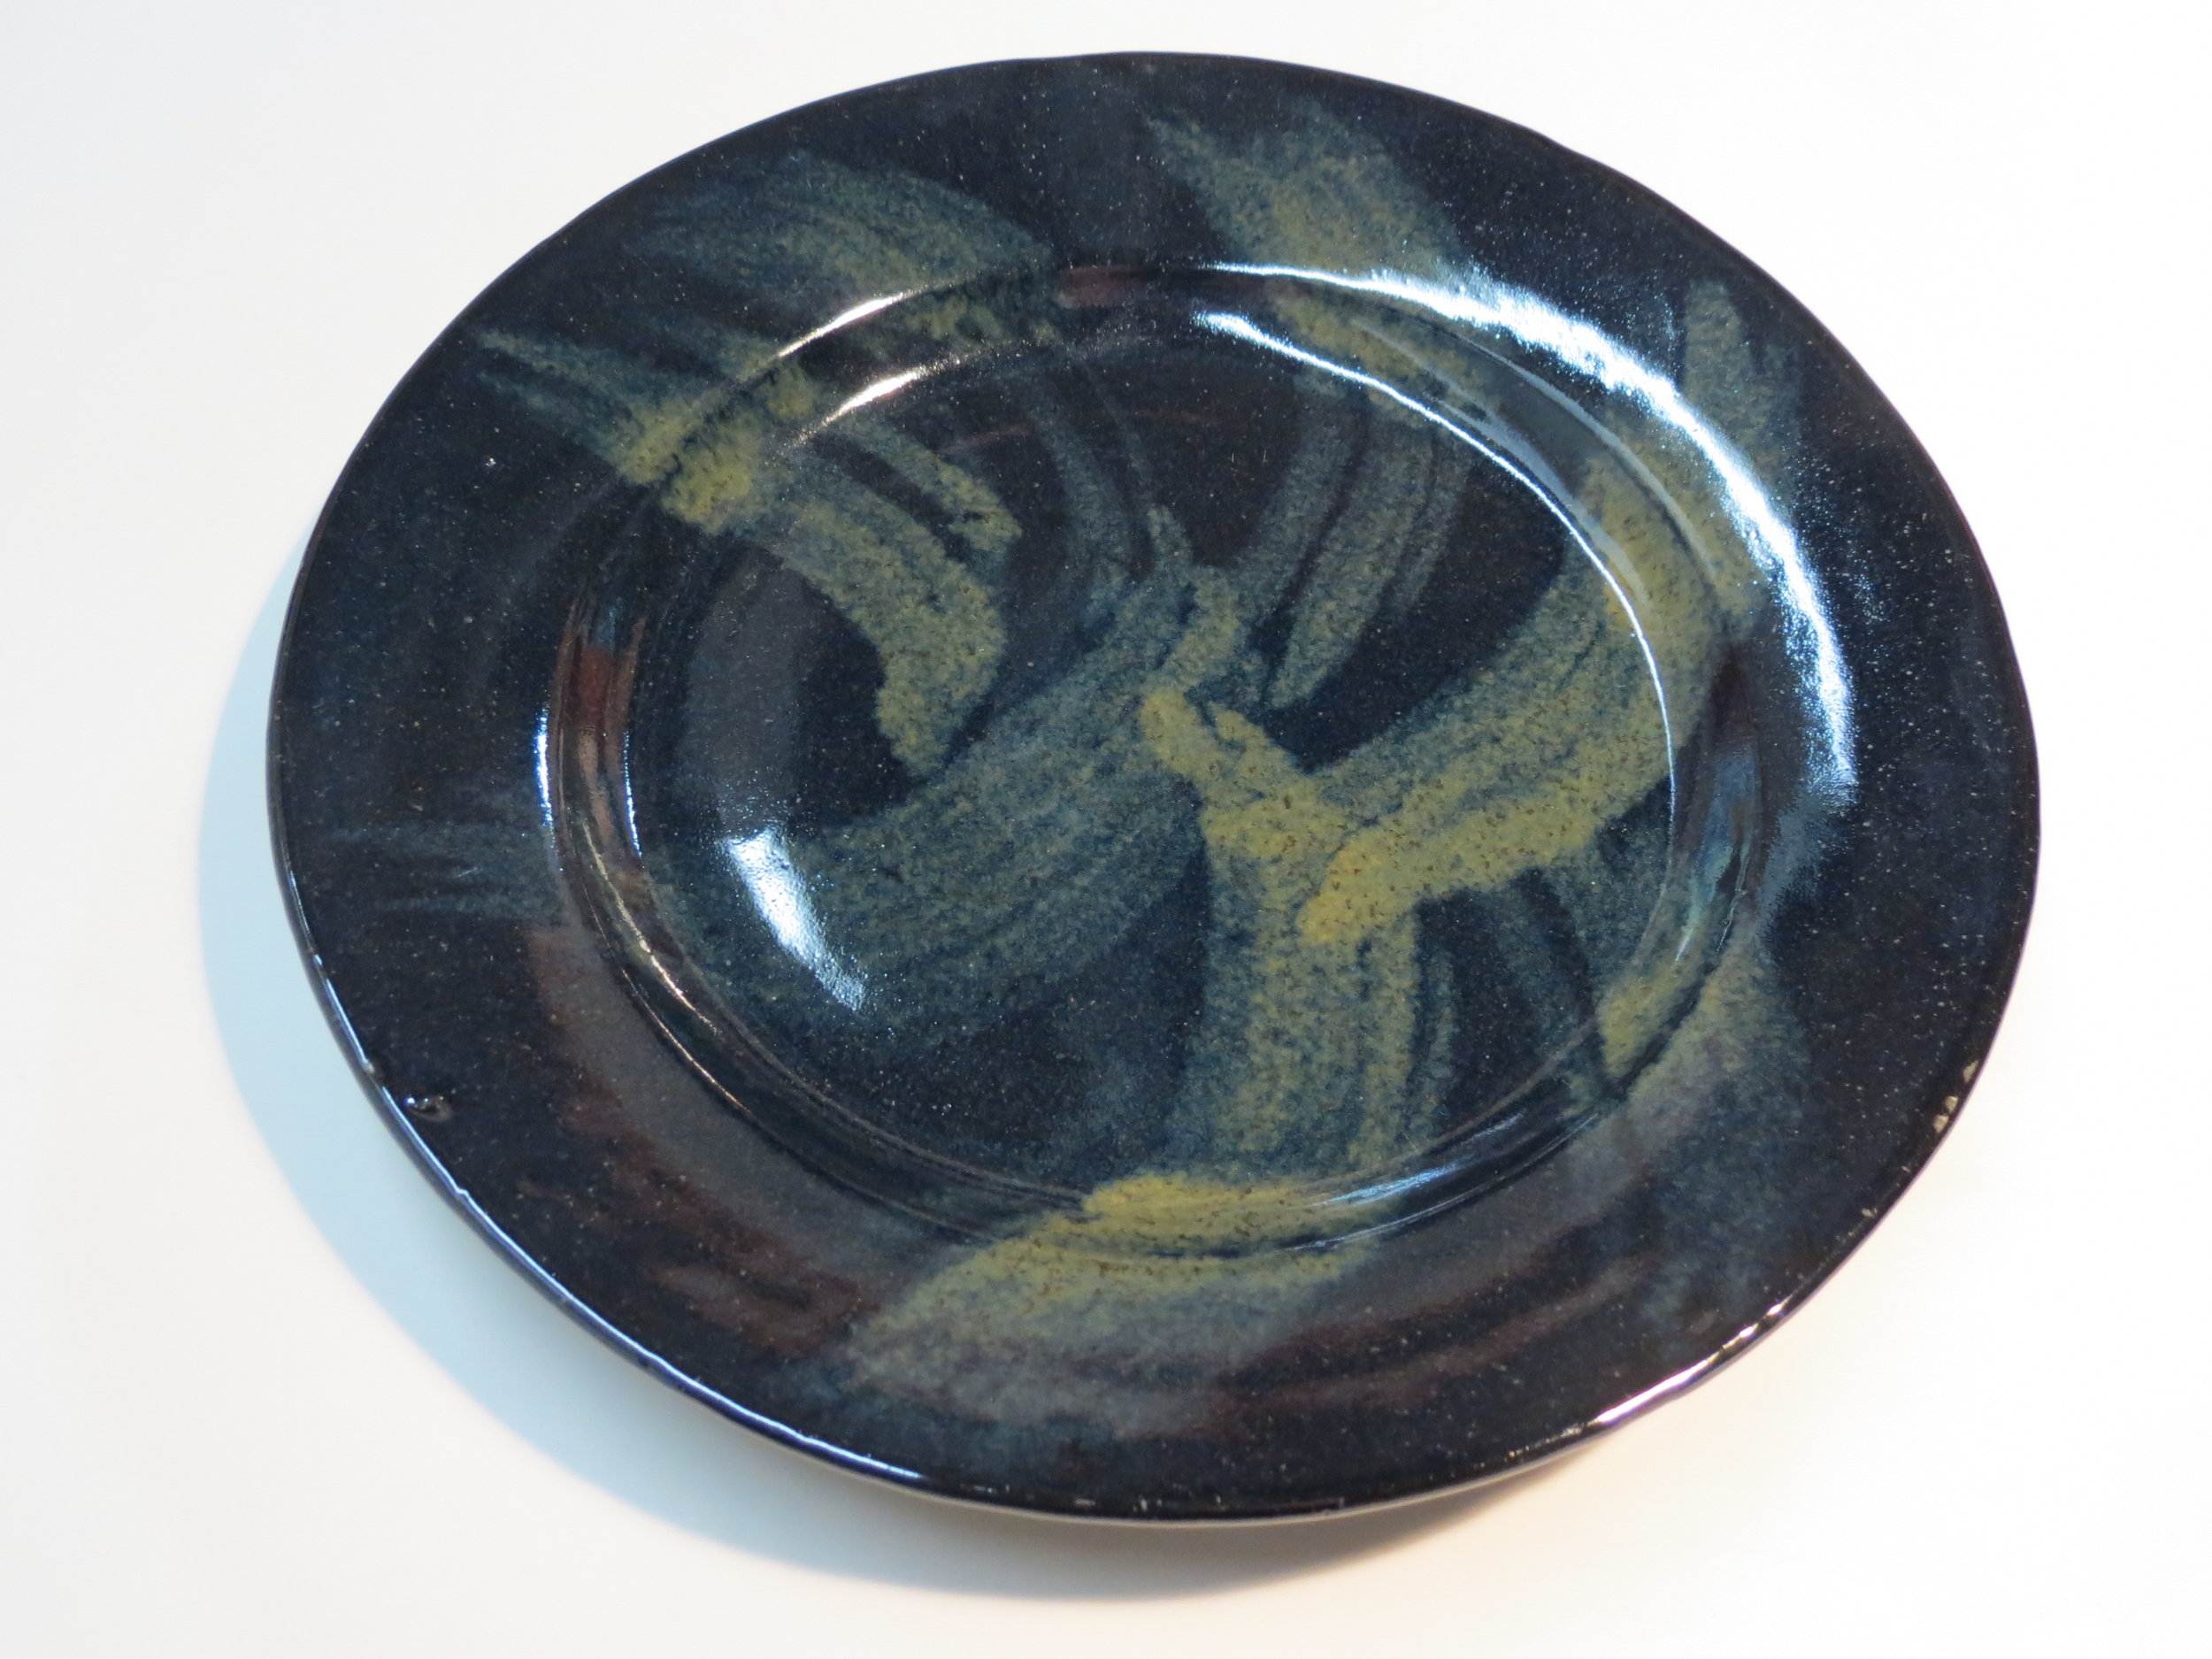 Dinner plate. Floating green over metallic black glaze.